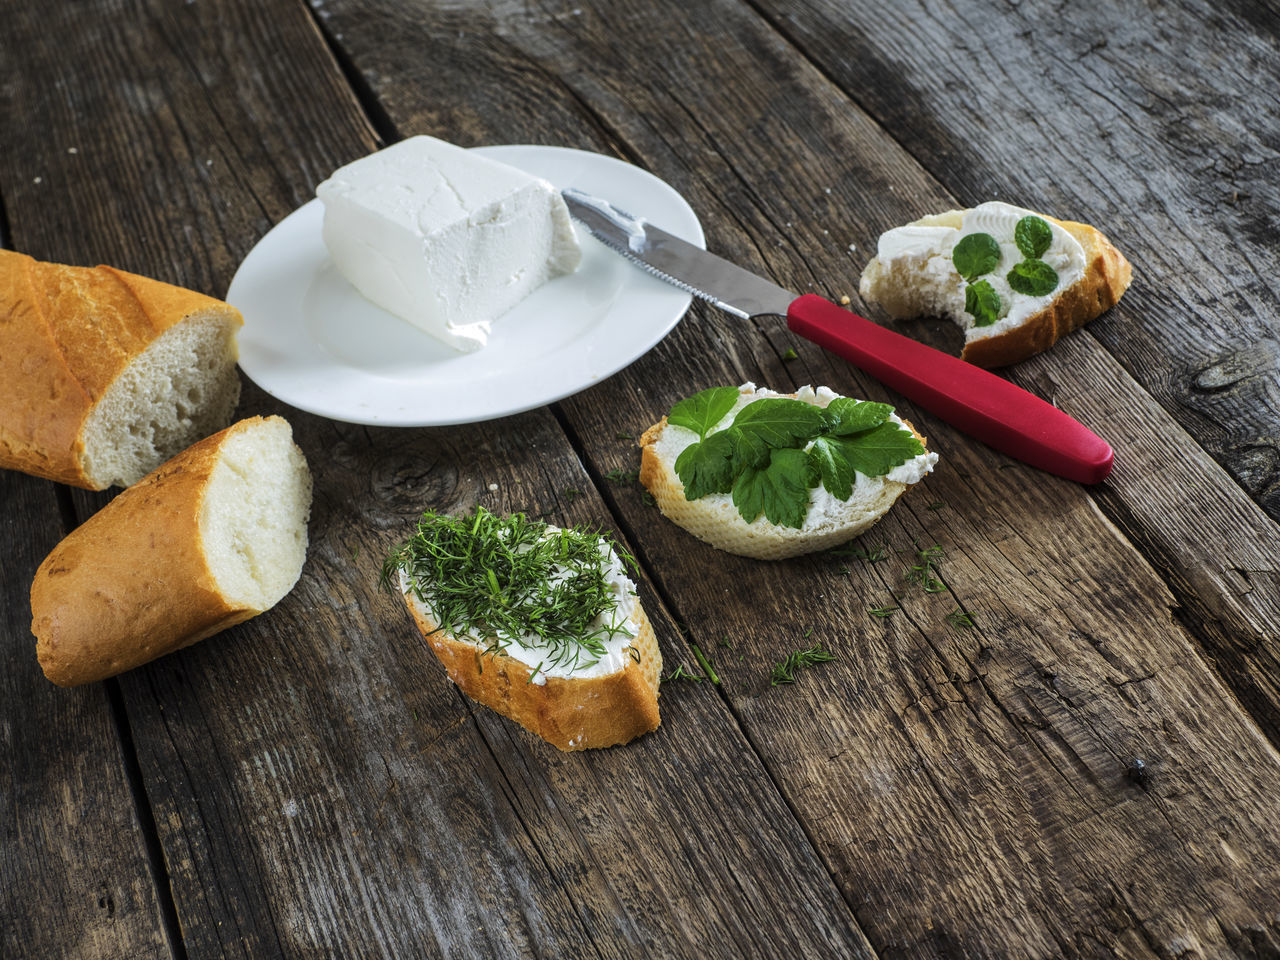 bruschetta with feta cheese and chopped spicy herbs on an old wooden weathered table Background Bread Bruschetta Cheese Chopped Close-up Feta Food Freshness Herbs No People Old Planks Plate Rustic Spicy Table Weathered Wood - Material Wooden